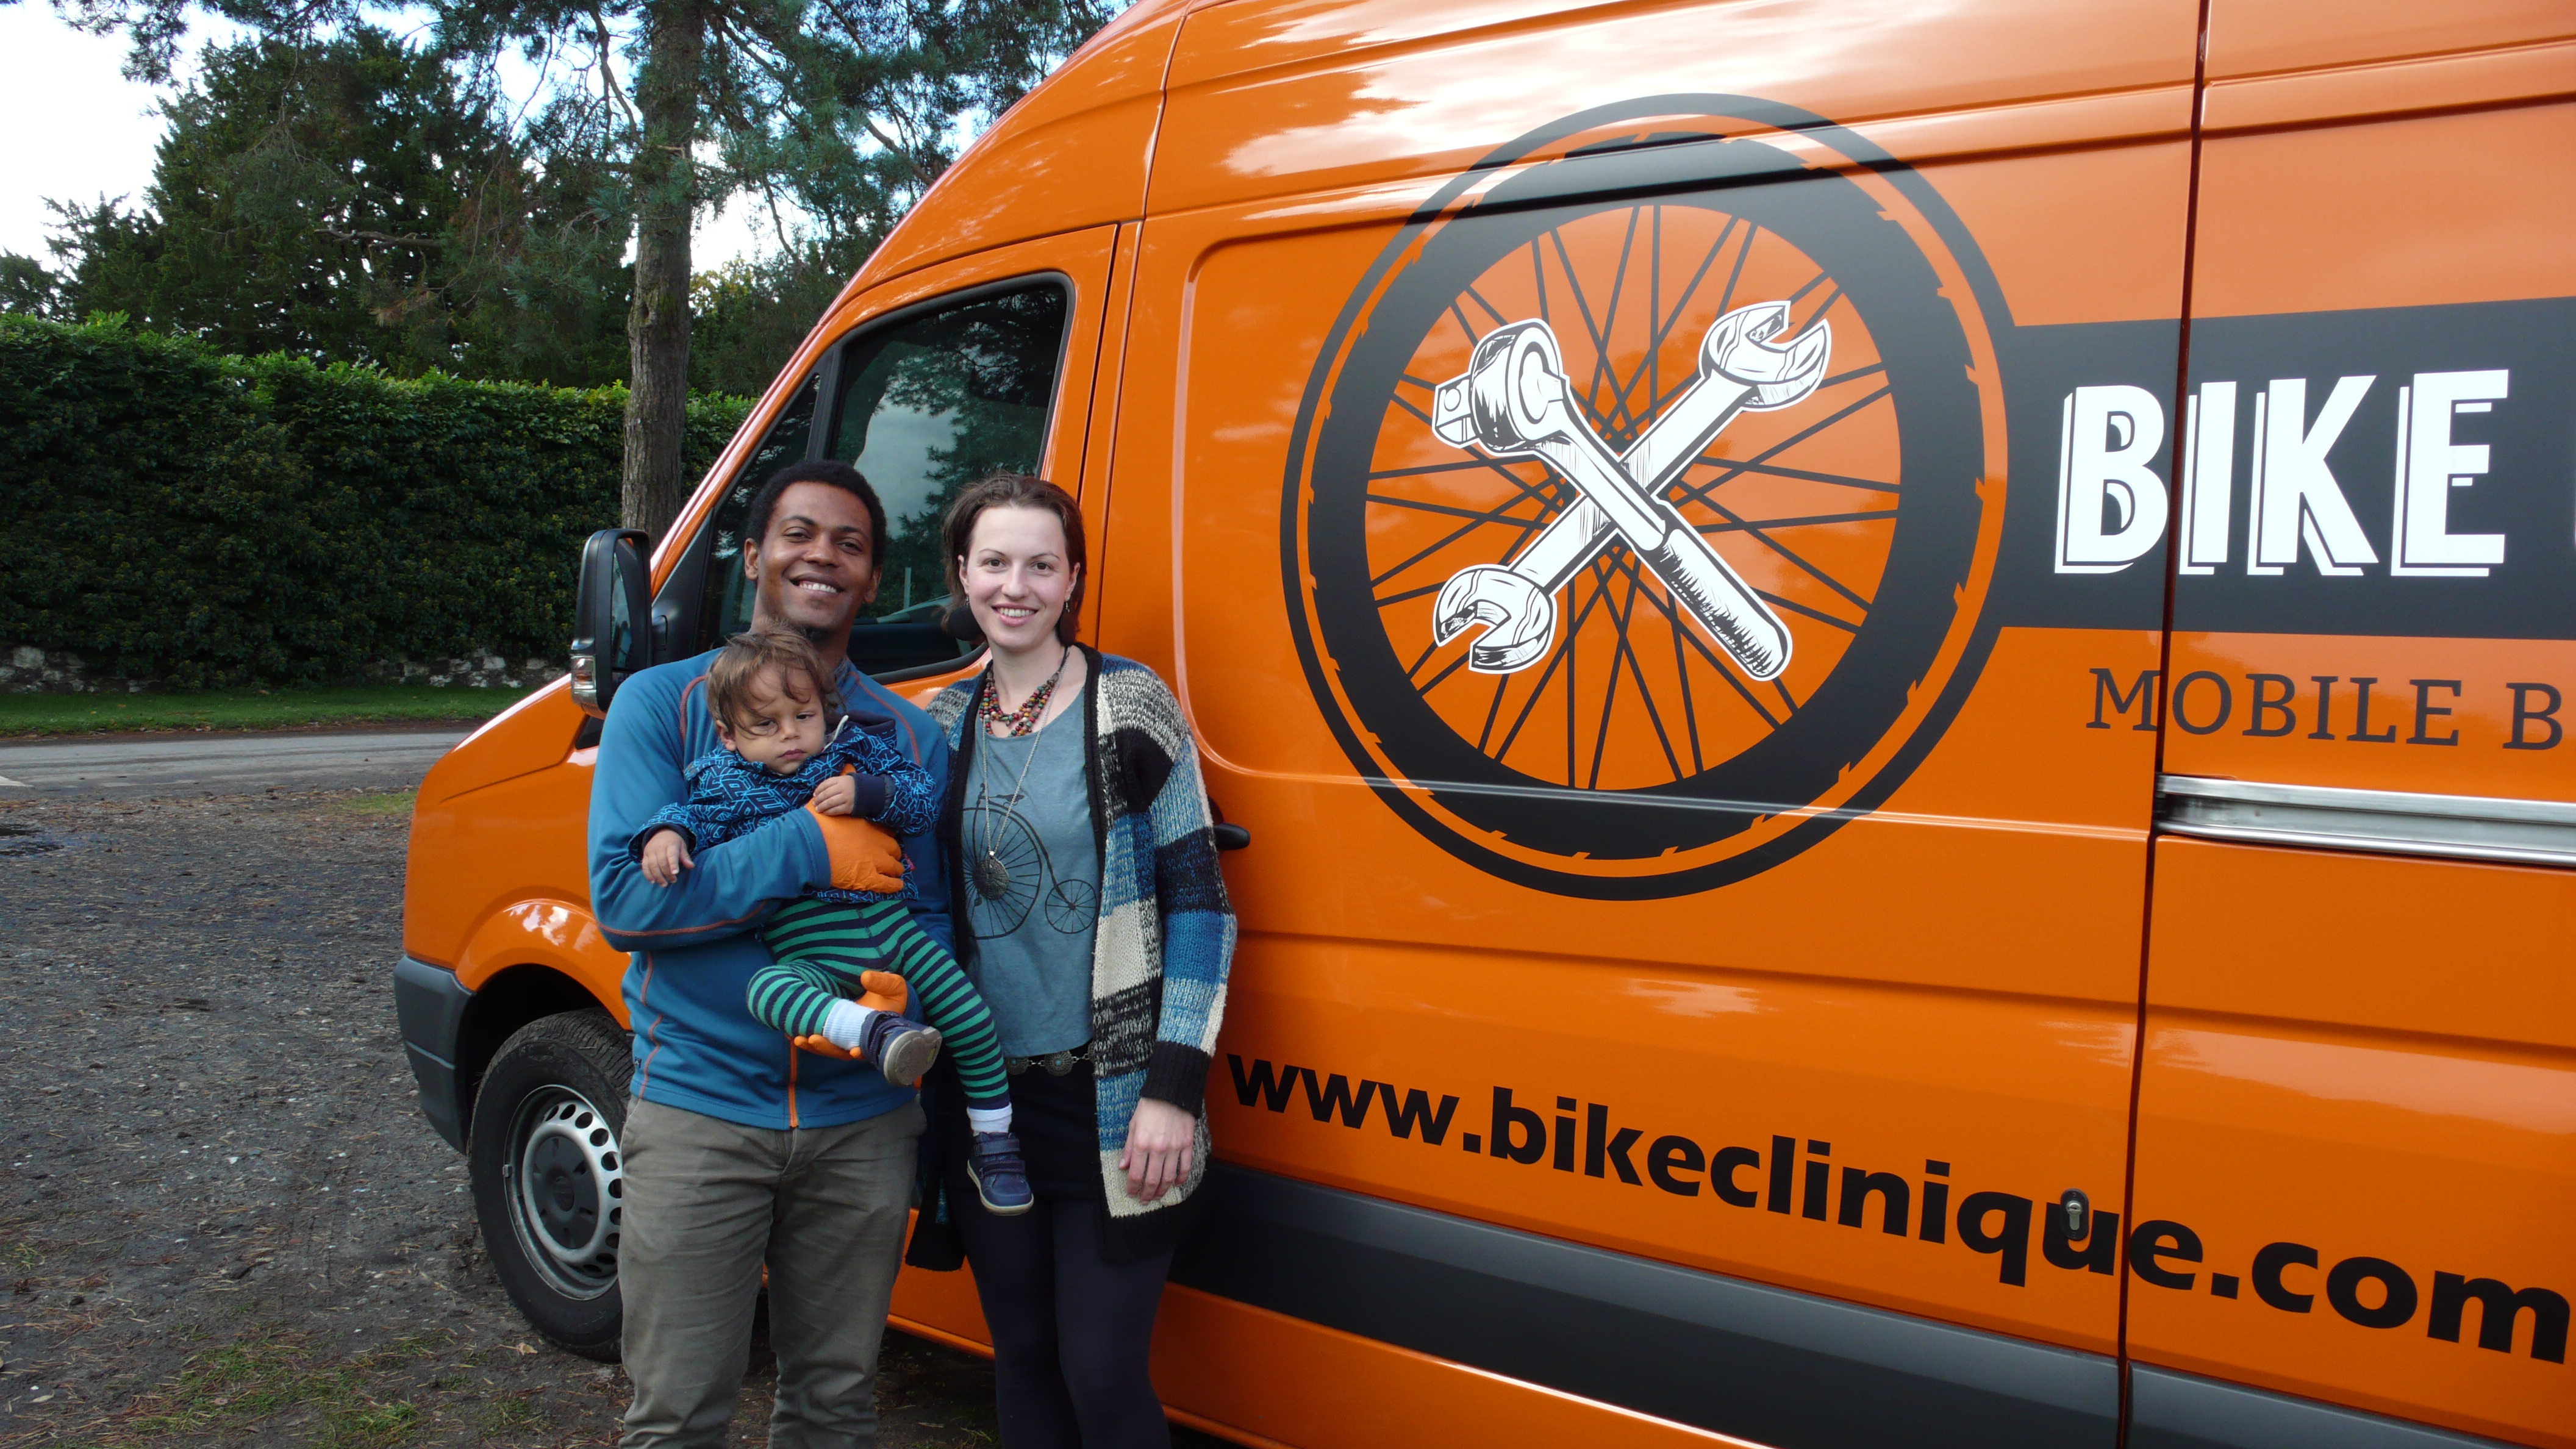 The Bike Clinique team- Family run, independent bike shop specialising in mobile bike repairs and servicing.